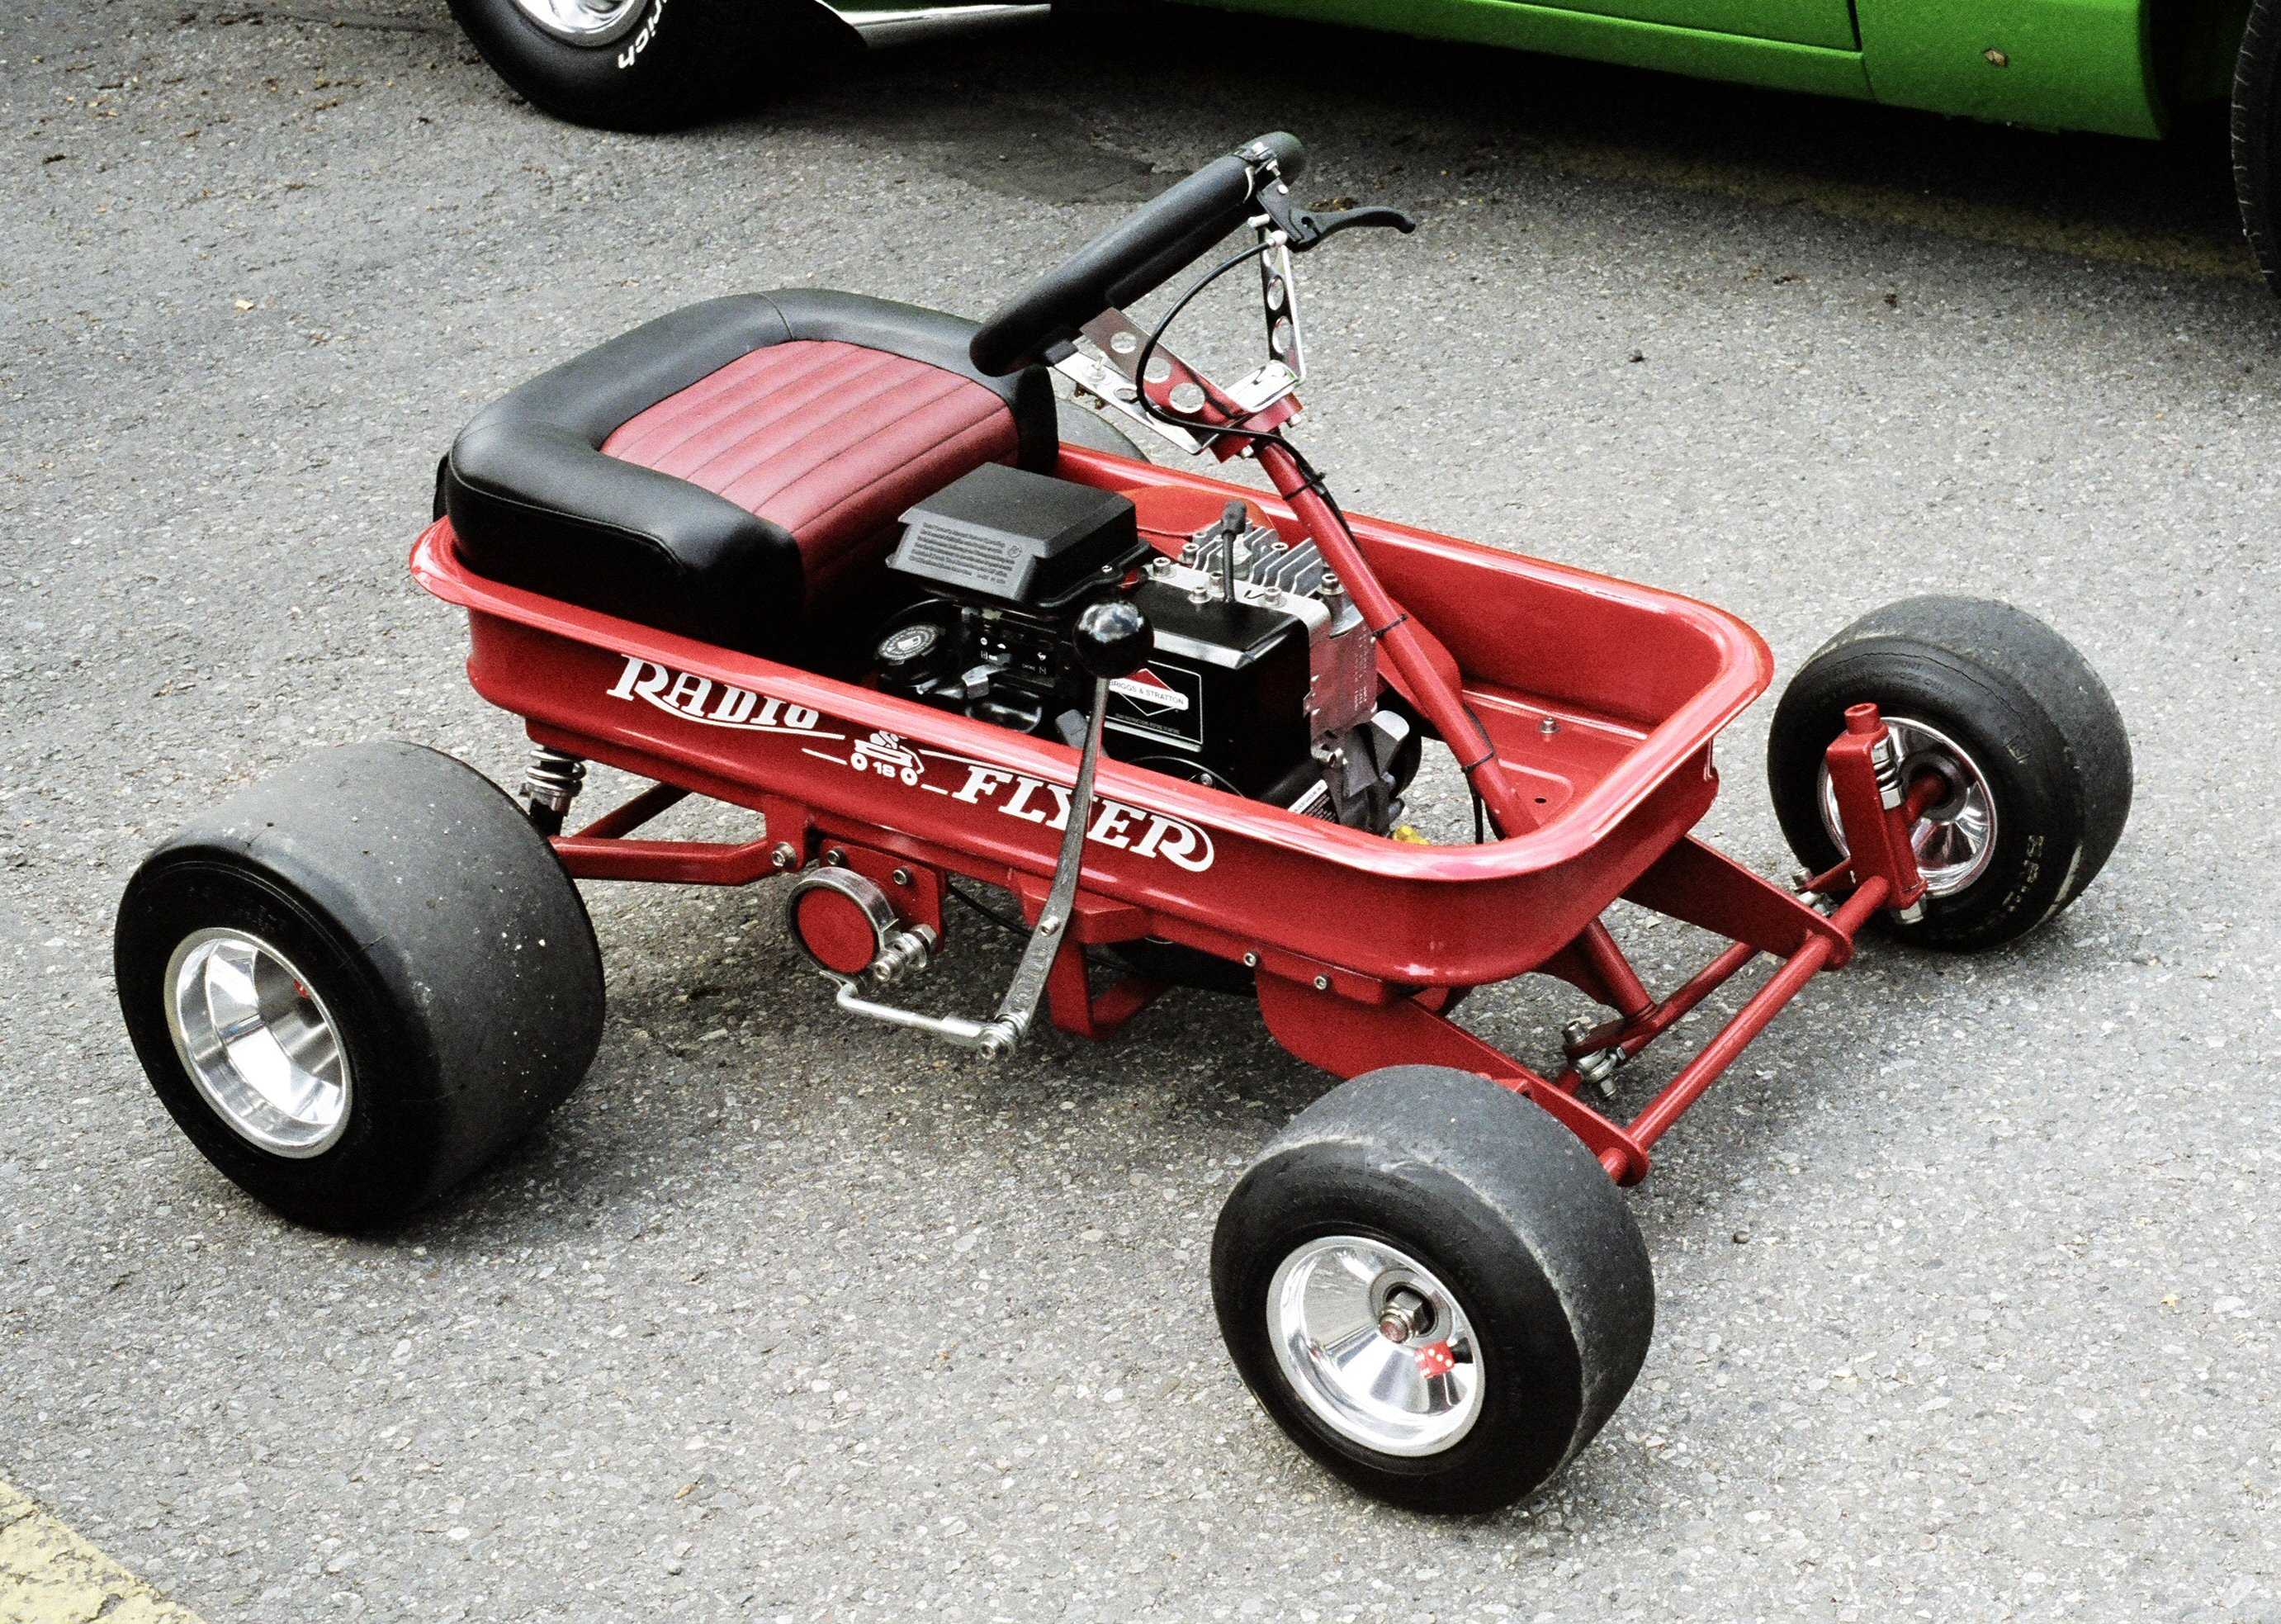 Little Red Wagon Go Kart Kit Autos Post : 10771369f1850cecb6o from www.autospost.com size 2763 x 1967 jpeg 1549kB